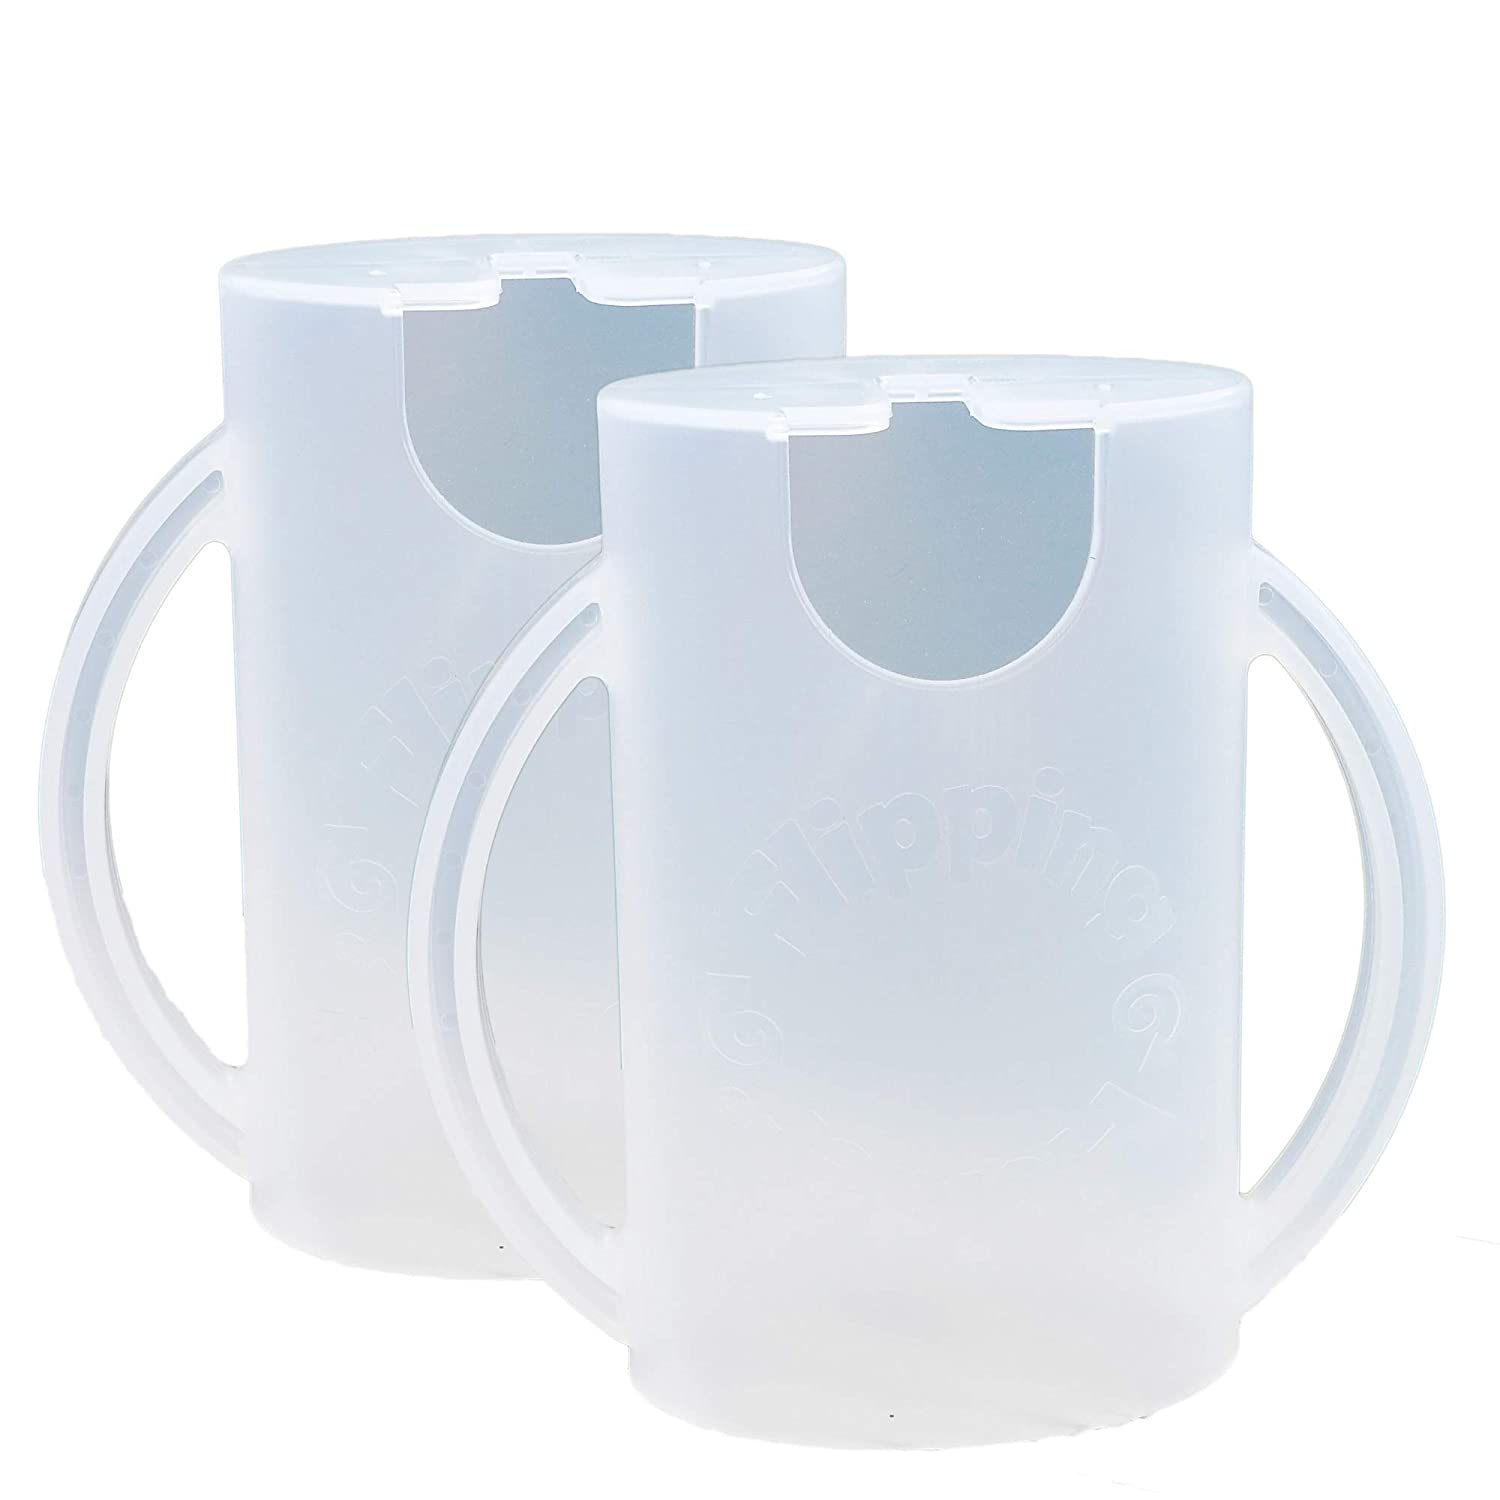 Flipping Holder, Multipurpose Squeeze-Proof Food Pouch Holder and Juice Box Holder (Snow White x2)